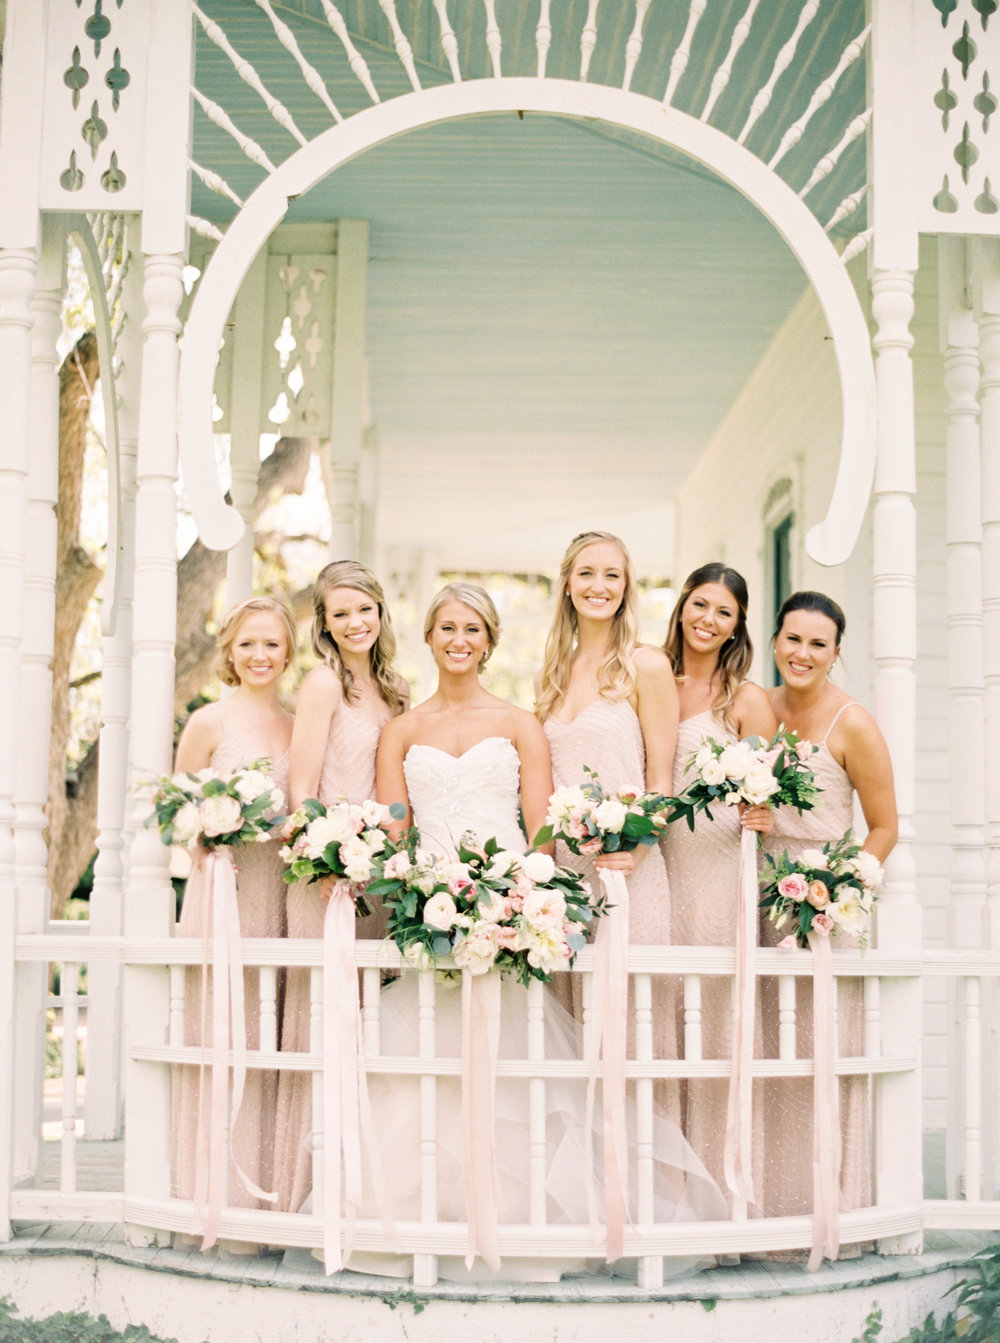 Stunning Outdoor Austin Wedding - Lindsey Brunk